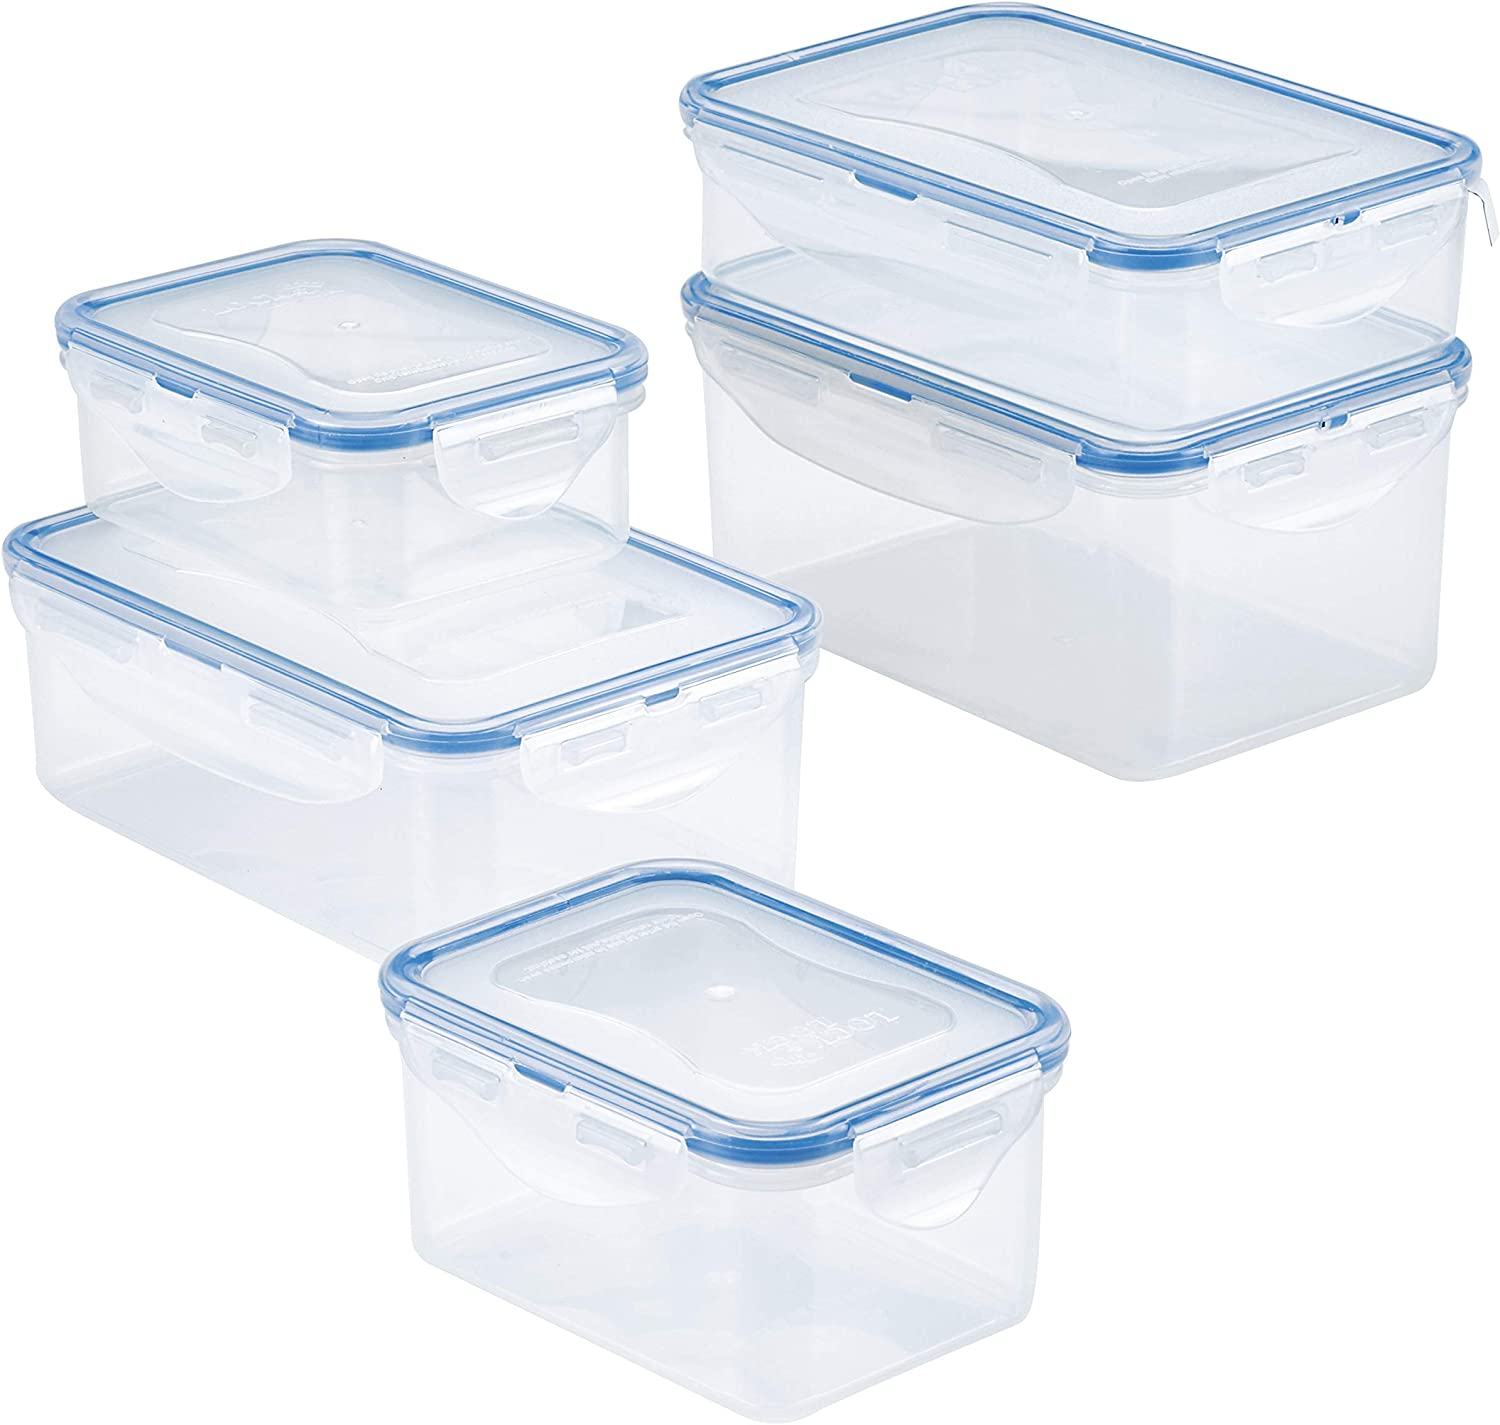 LOCK & LOCK Easy Essentials Food Storage lids/Airtight containers, BPA Free, 10 Piece, Clear